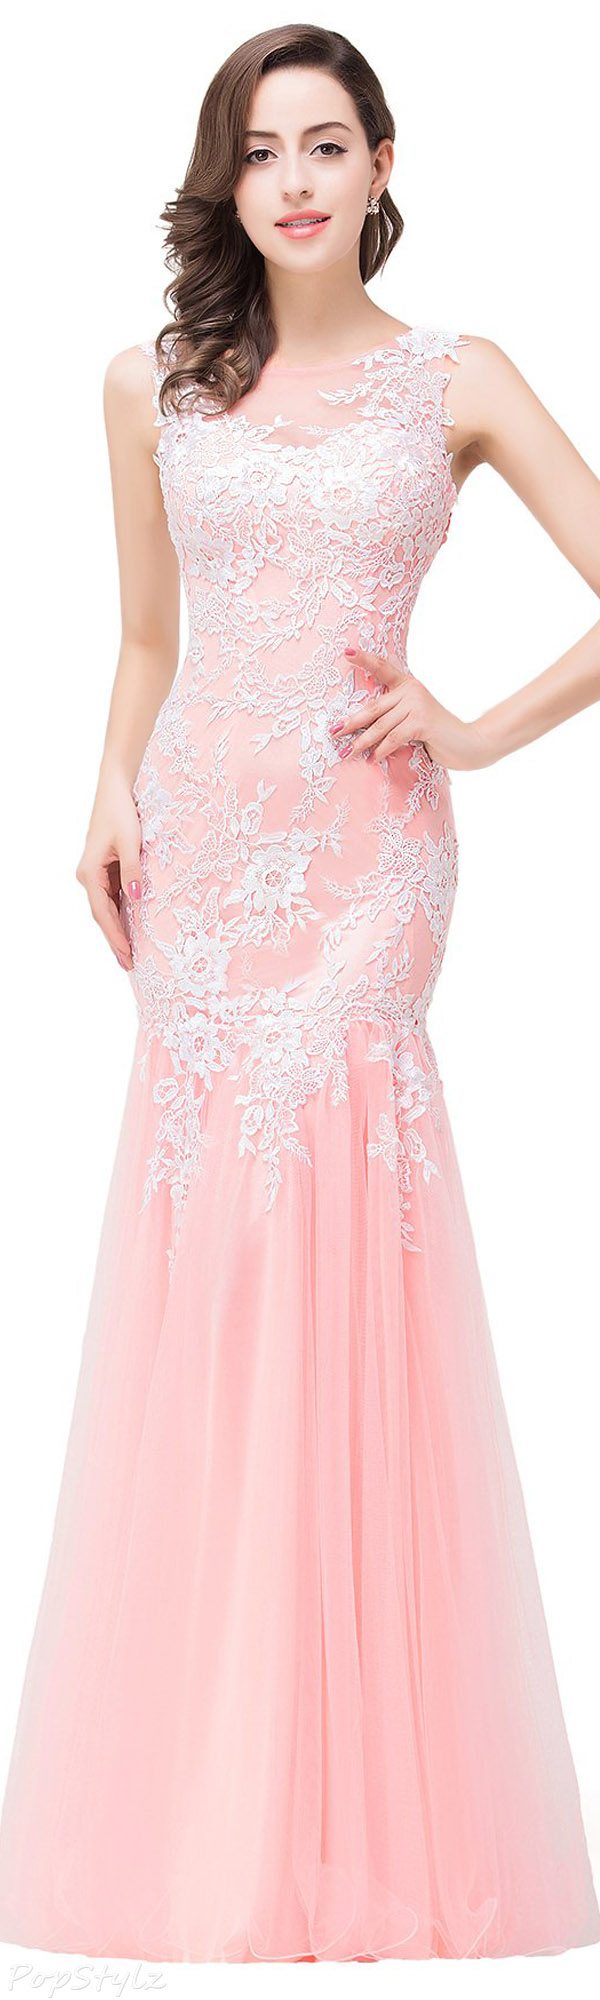 Babyonline Tulle & Lace Appliques Evening Gown